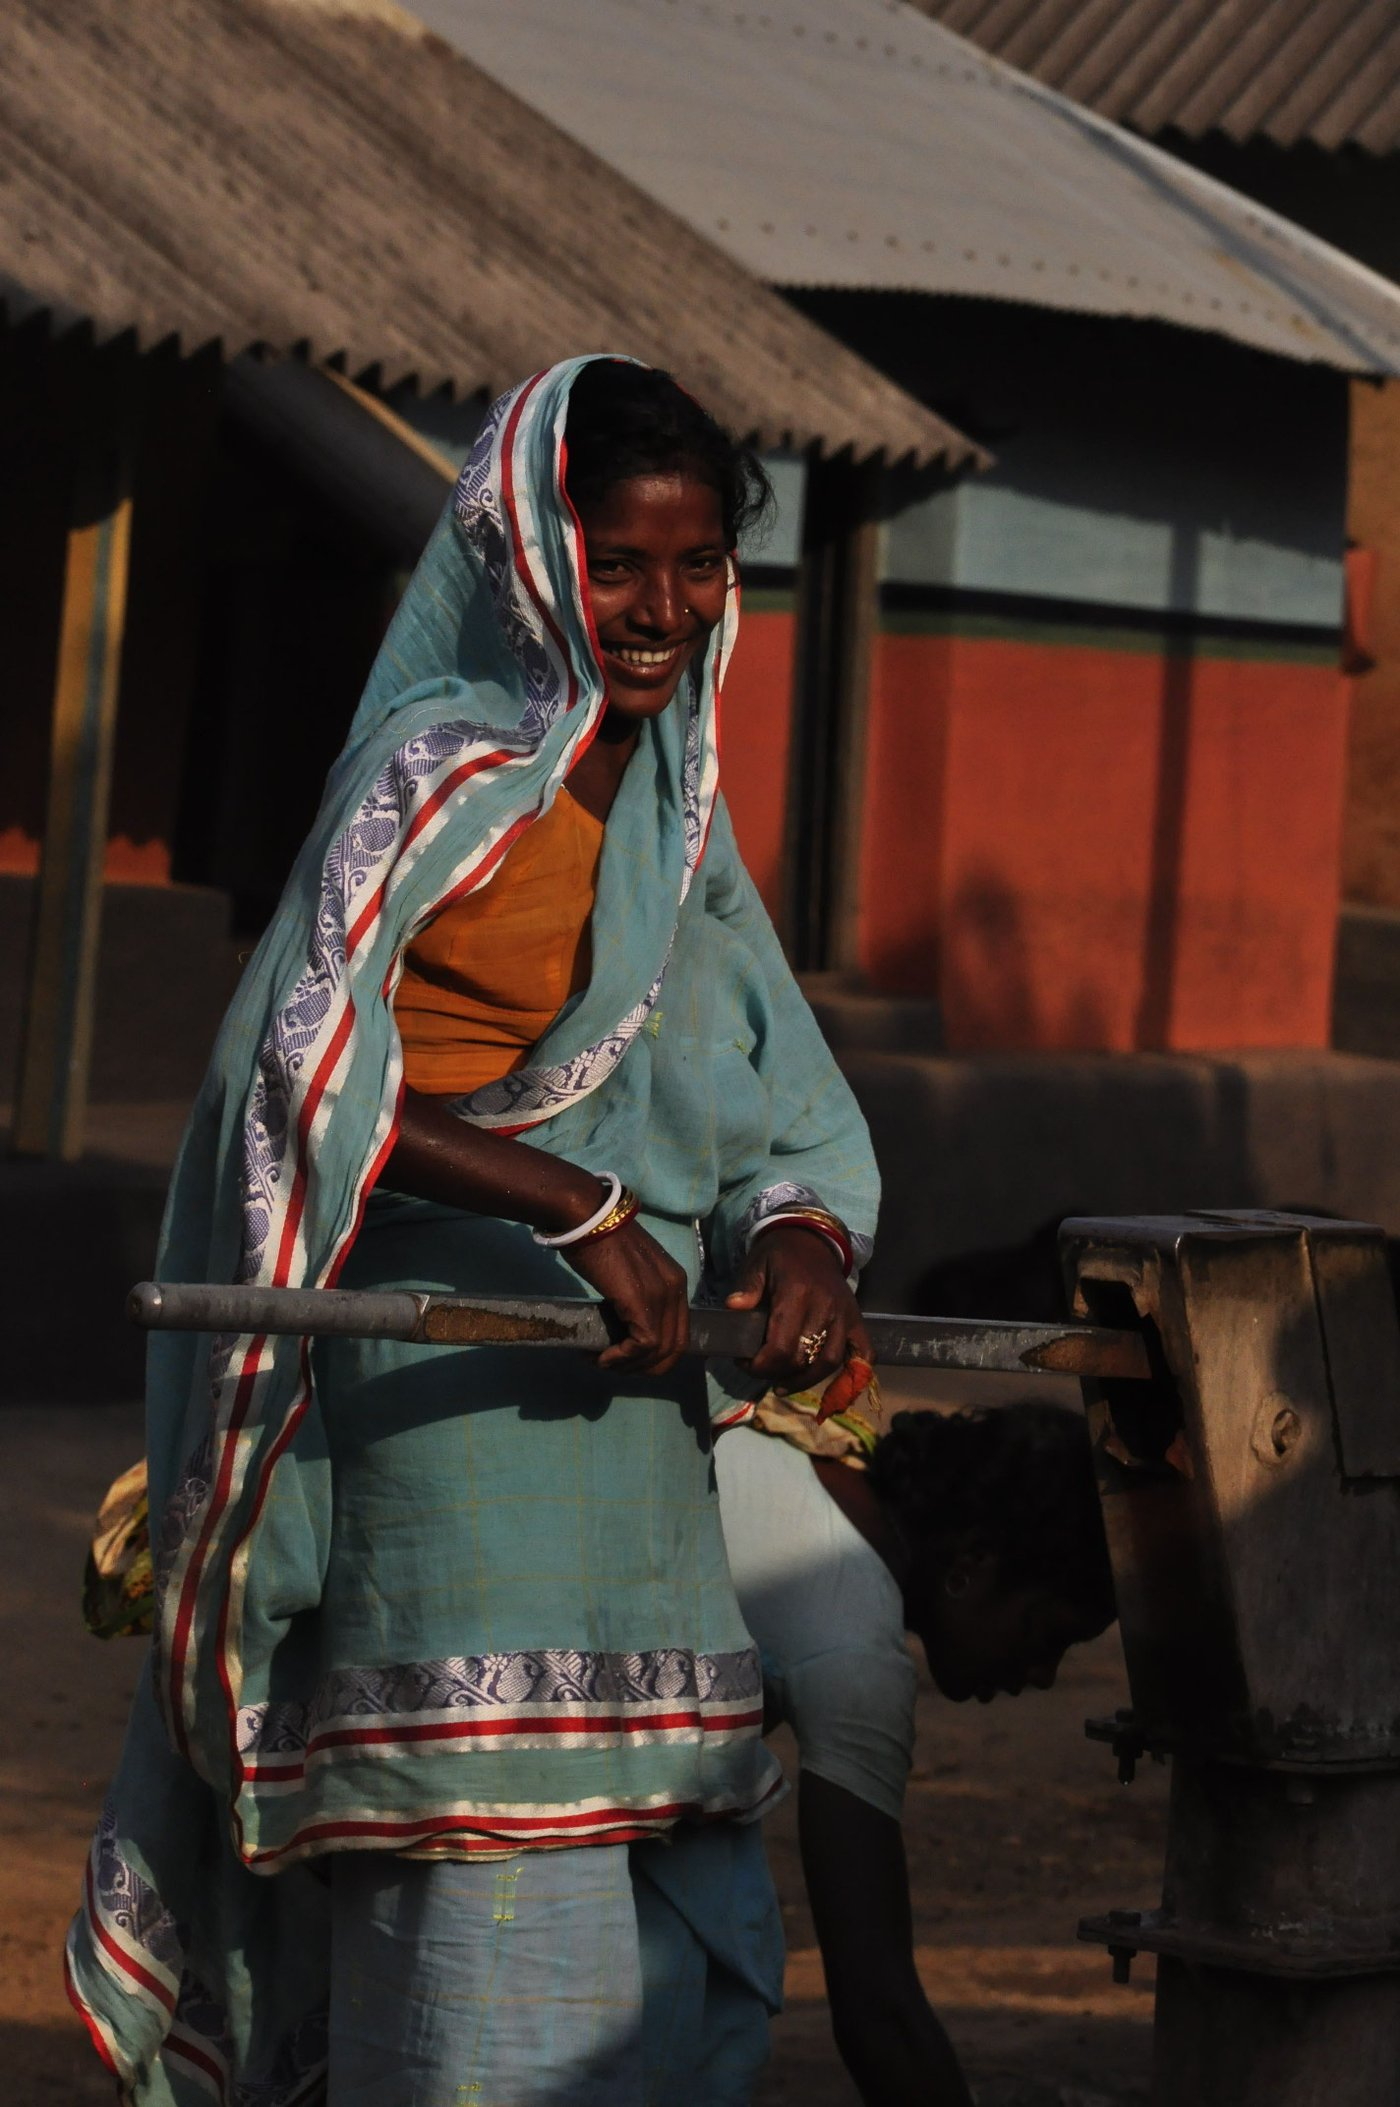 Santhal woman pumping a tubewell to collect water